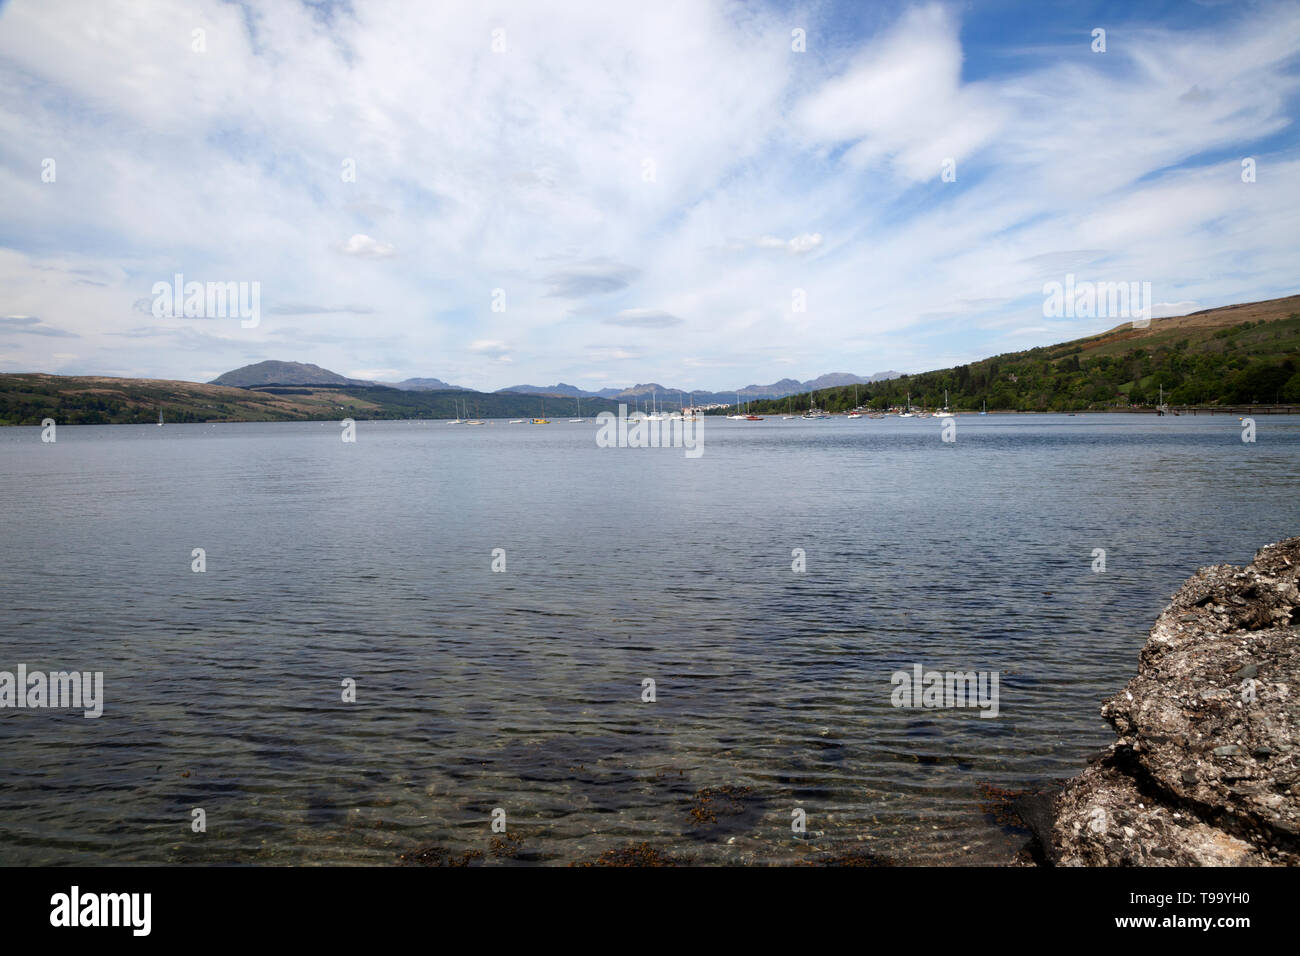 View of the Gareloch in Argyll, Scotland - Stock Image